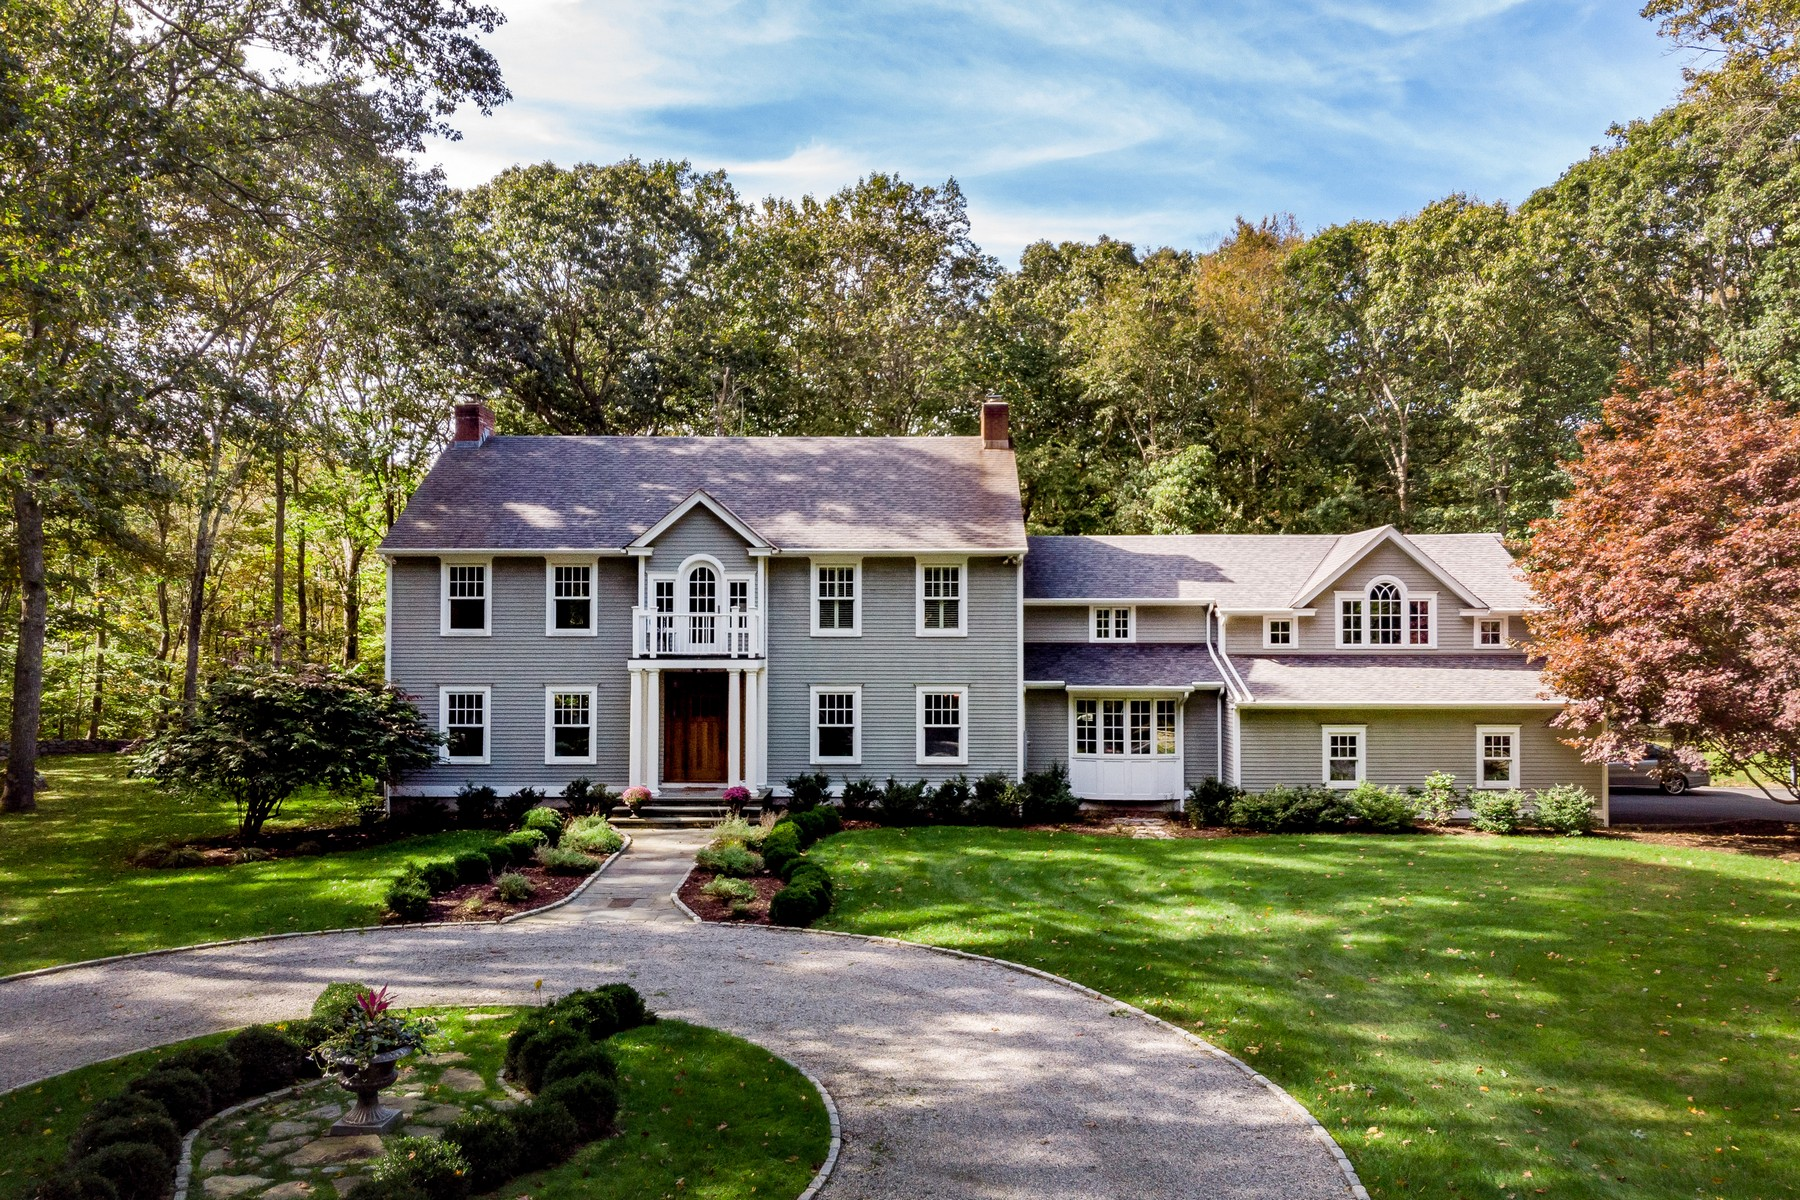 Single Family Home for Sale at Impressive Home on End of Cul-de-Sac 14 Stonewood Dr Old Lyme, Connecticut 06371 United States